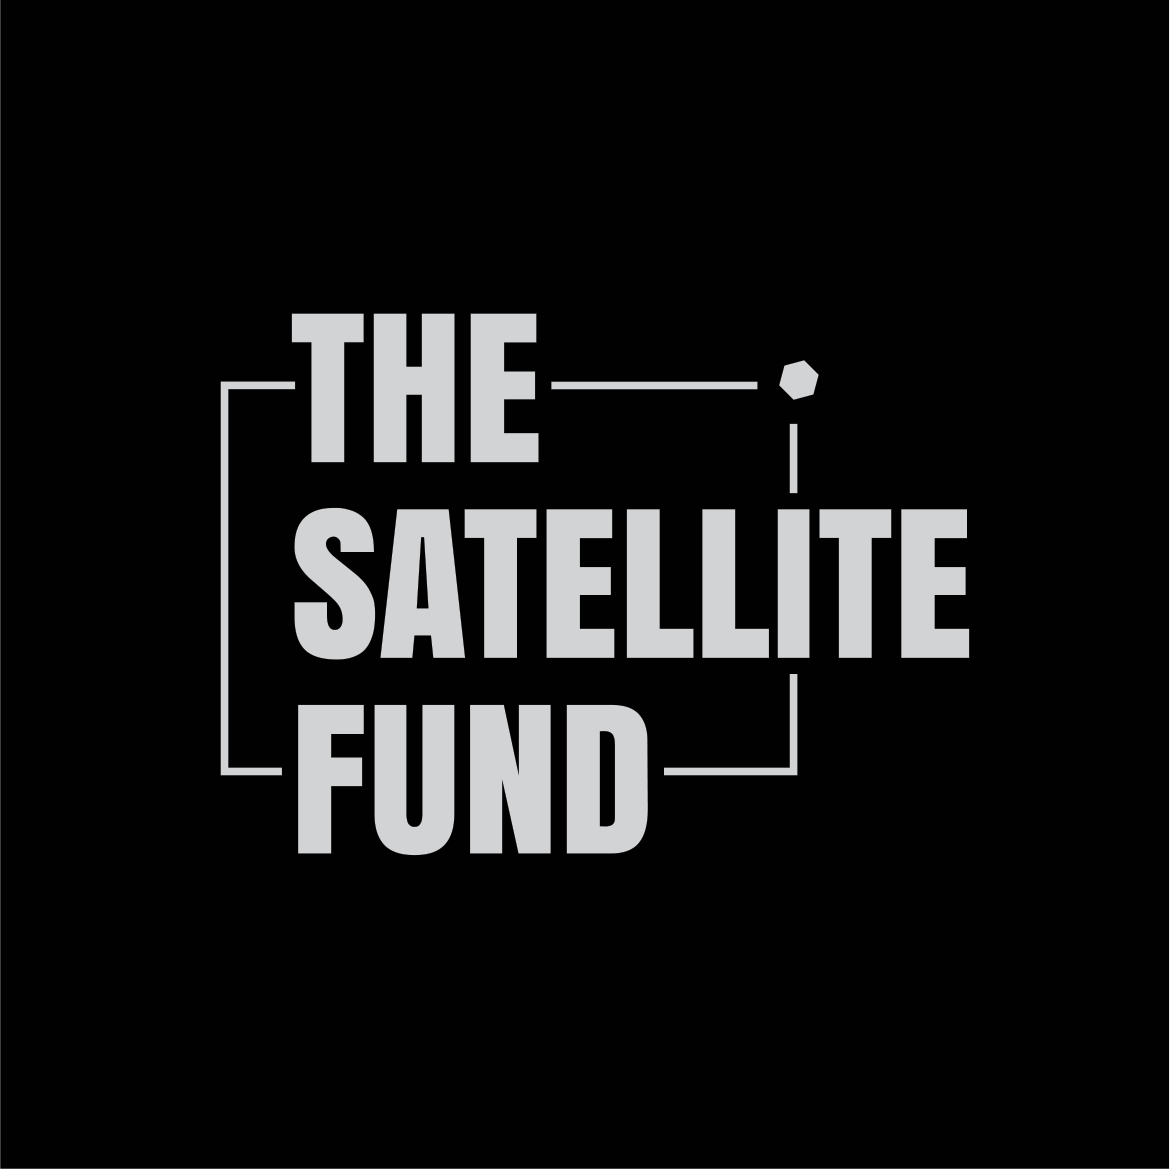 The Satellite Fund